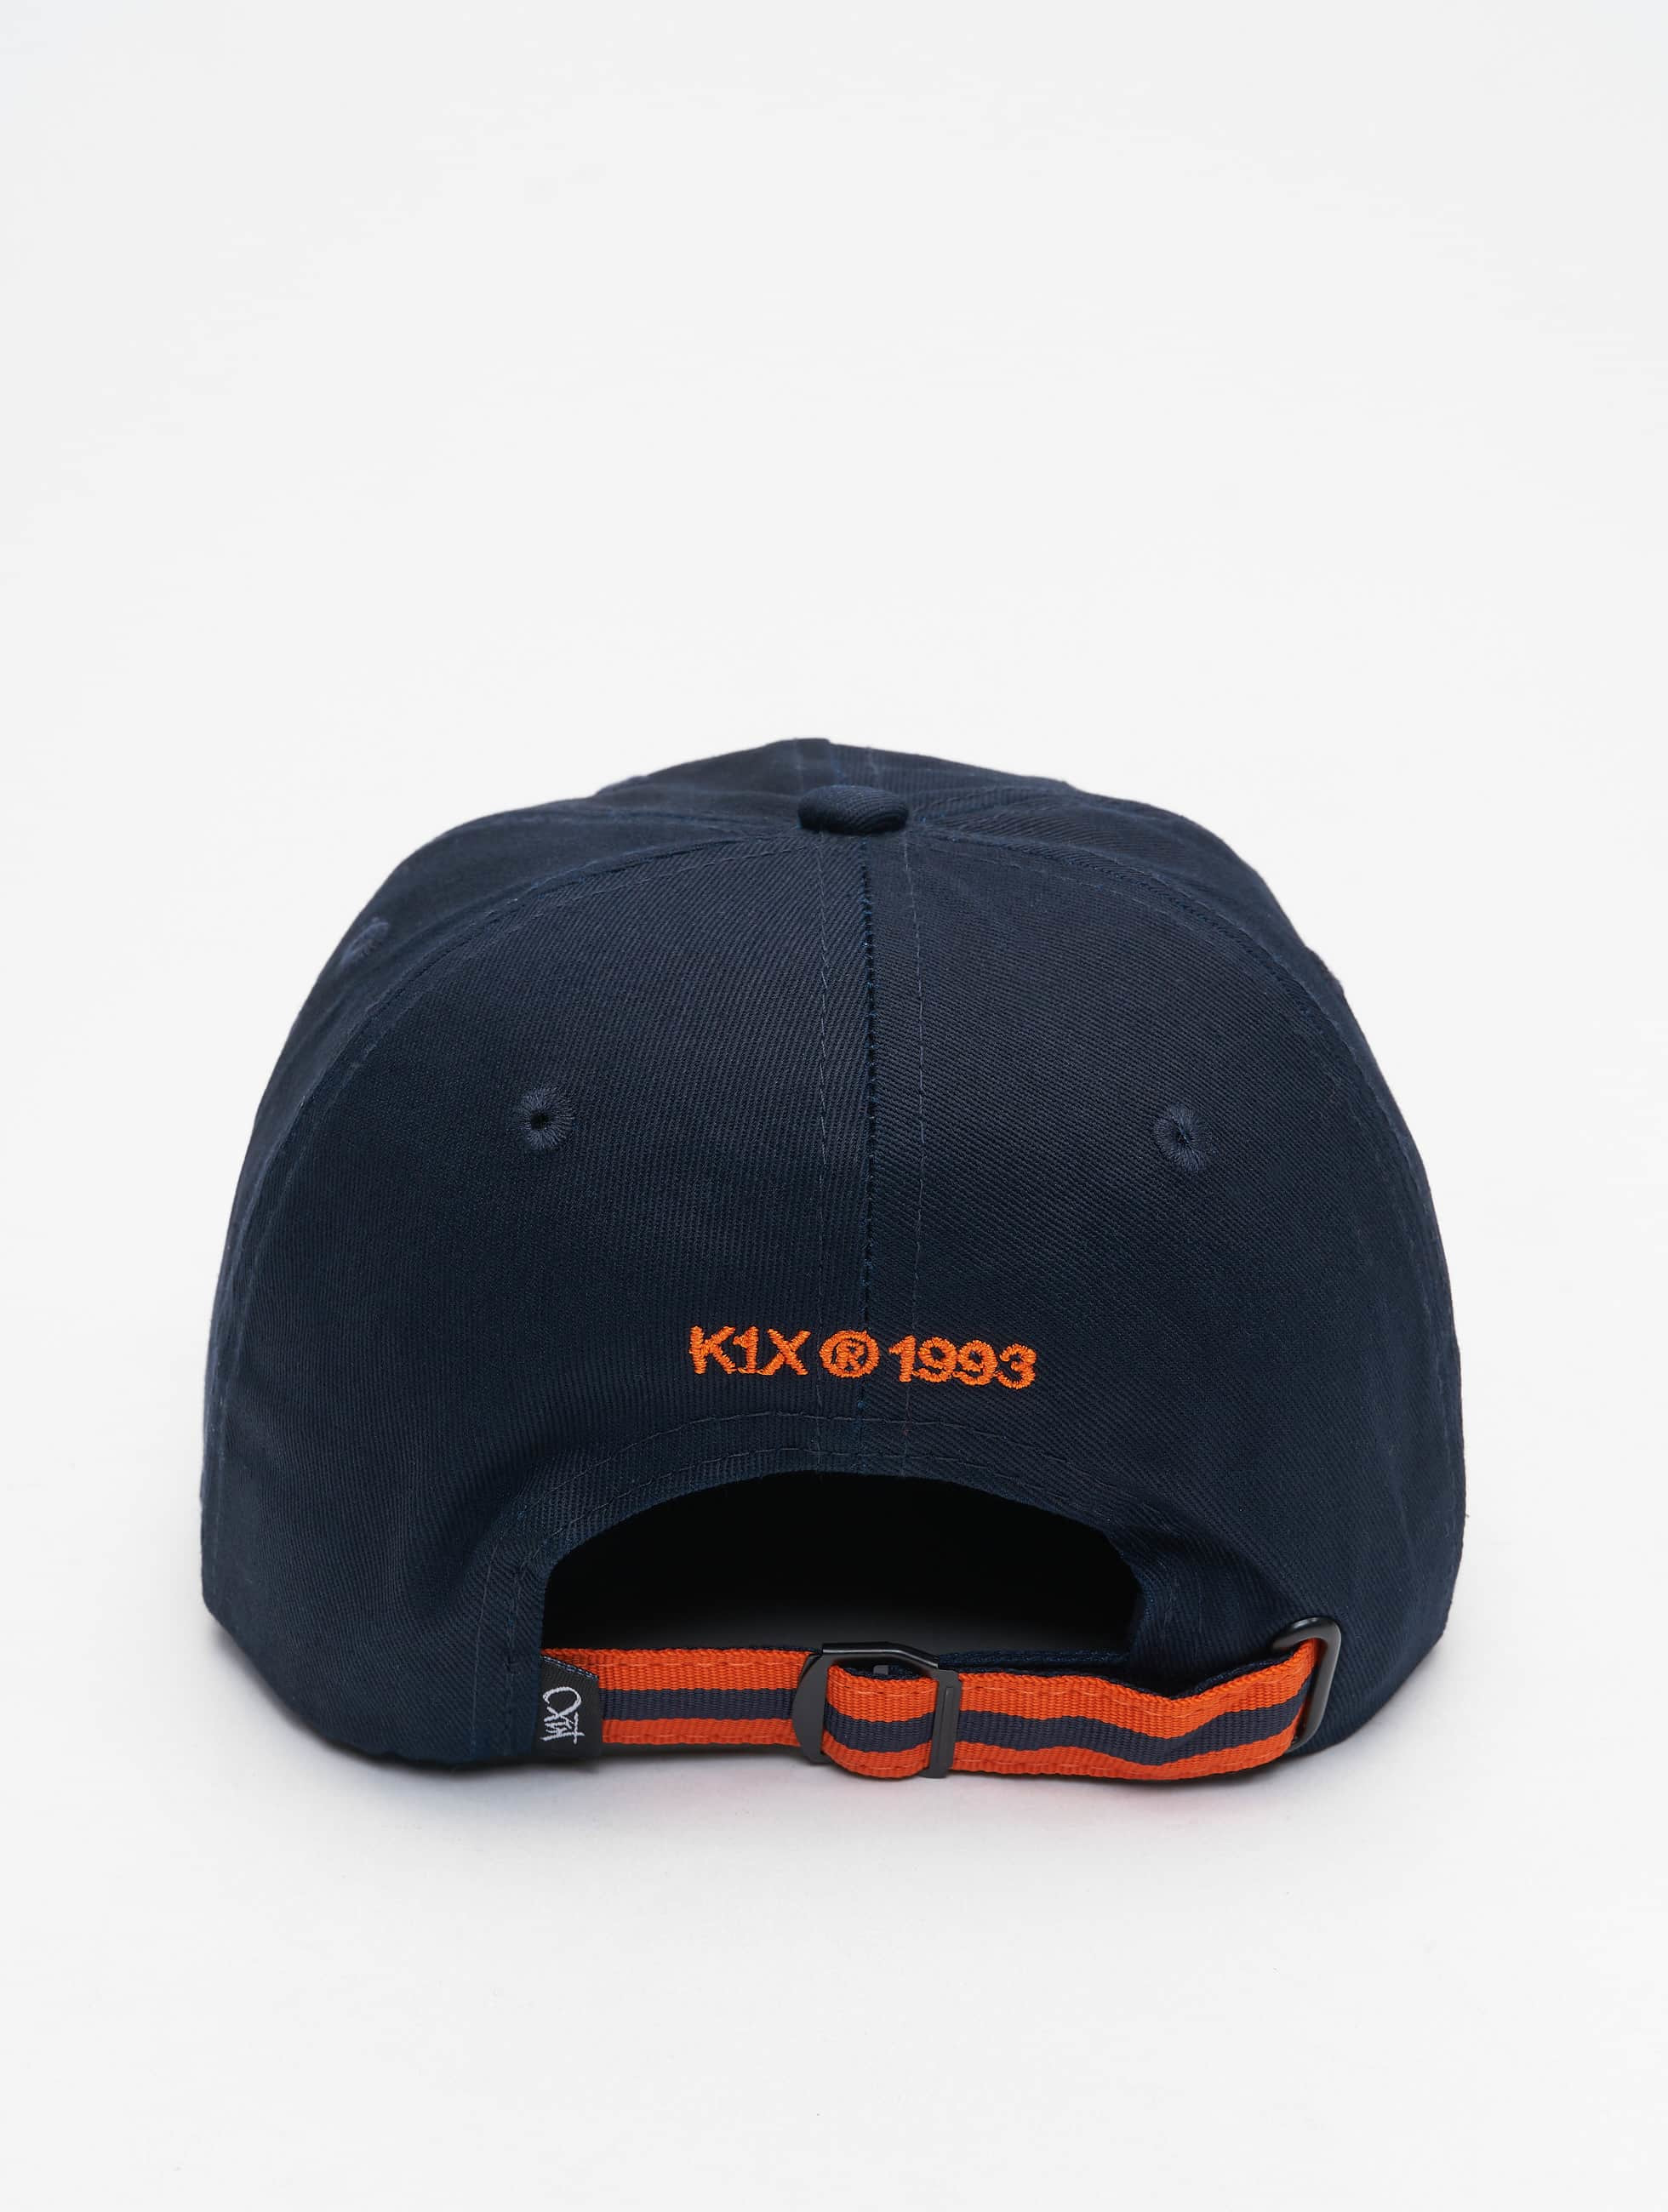 K1X Snapback Cap Play Hard Basketball Sports blau